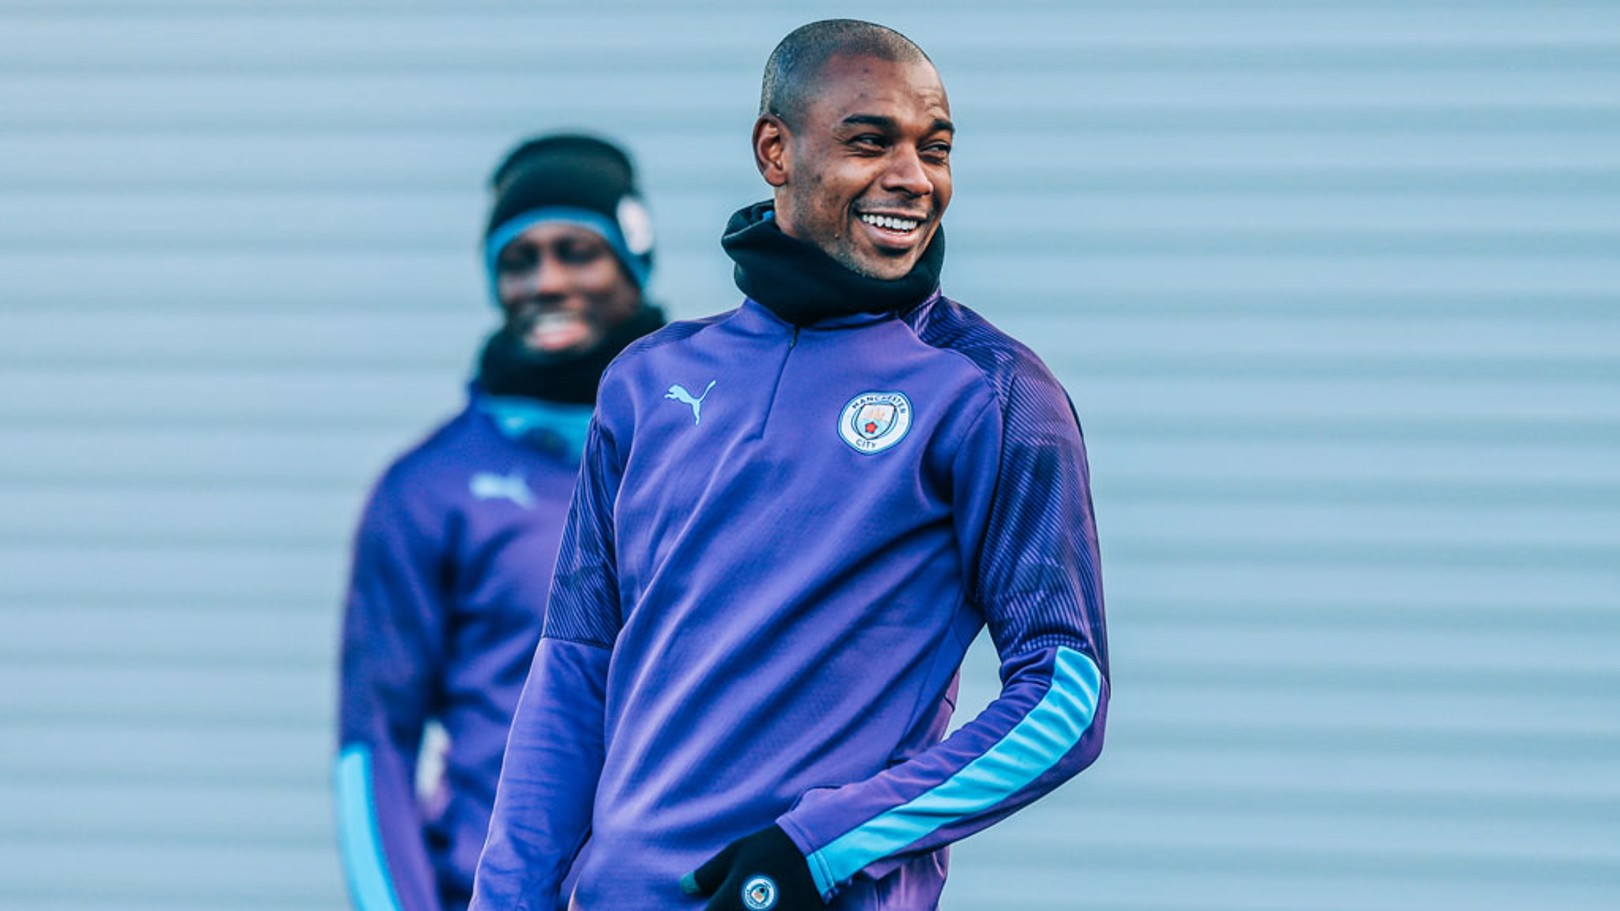 EXTRA LAYERS: The cold doesn't seem to be bothering Fernandinho